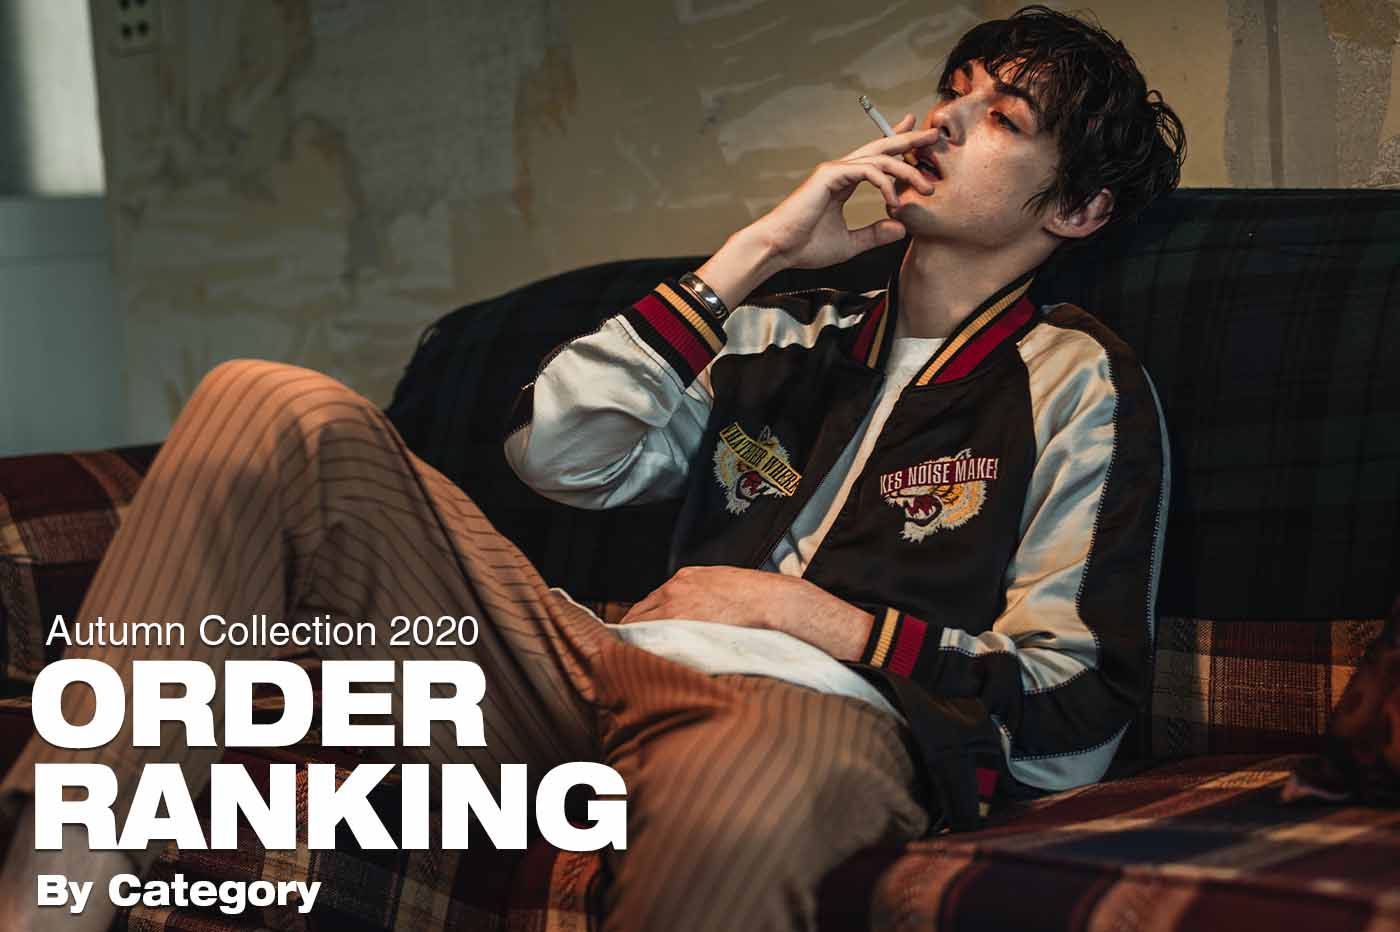 Autumn Collection 2020 ORDER RANKING